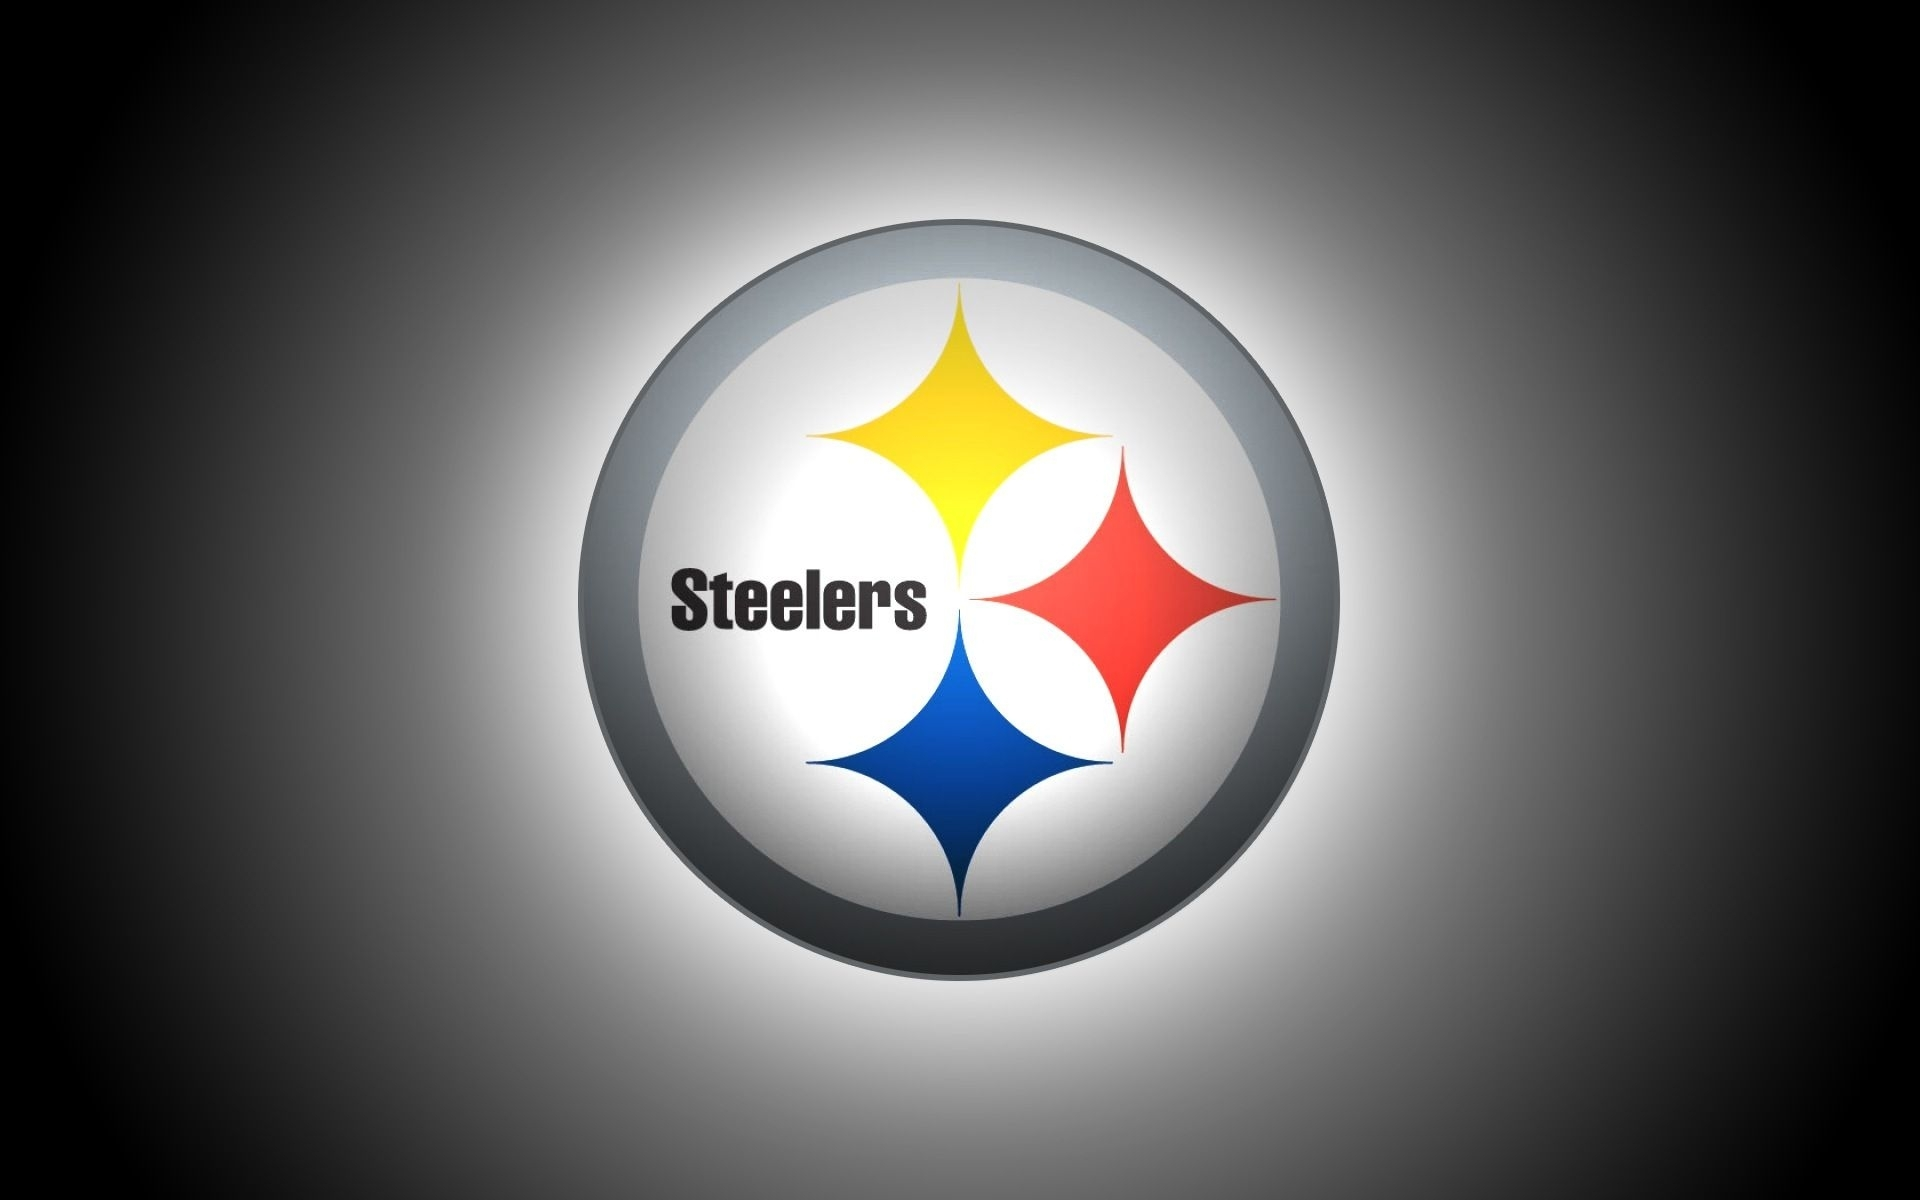 logo of pittsburgh steelers 1 - media file | pixelstalk